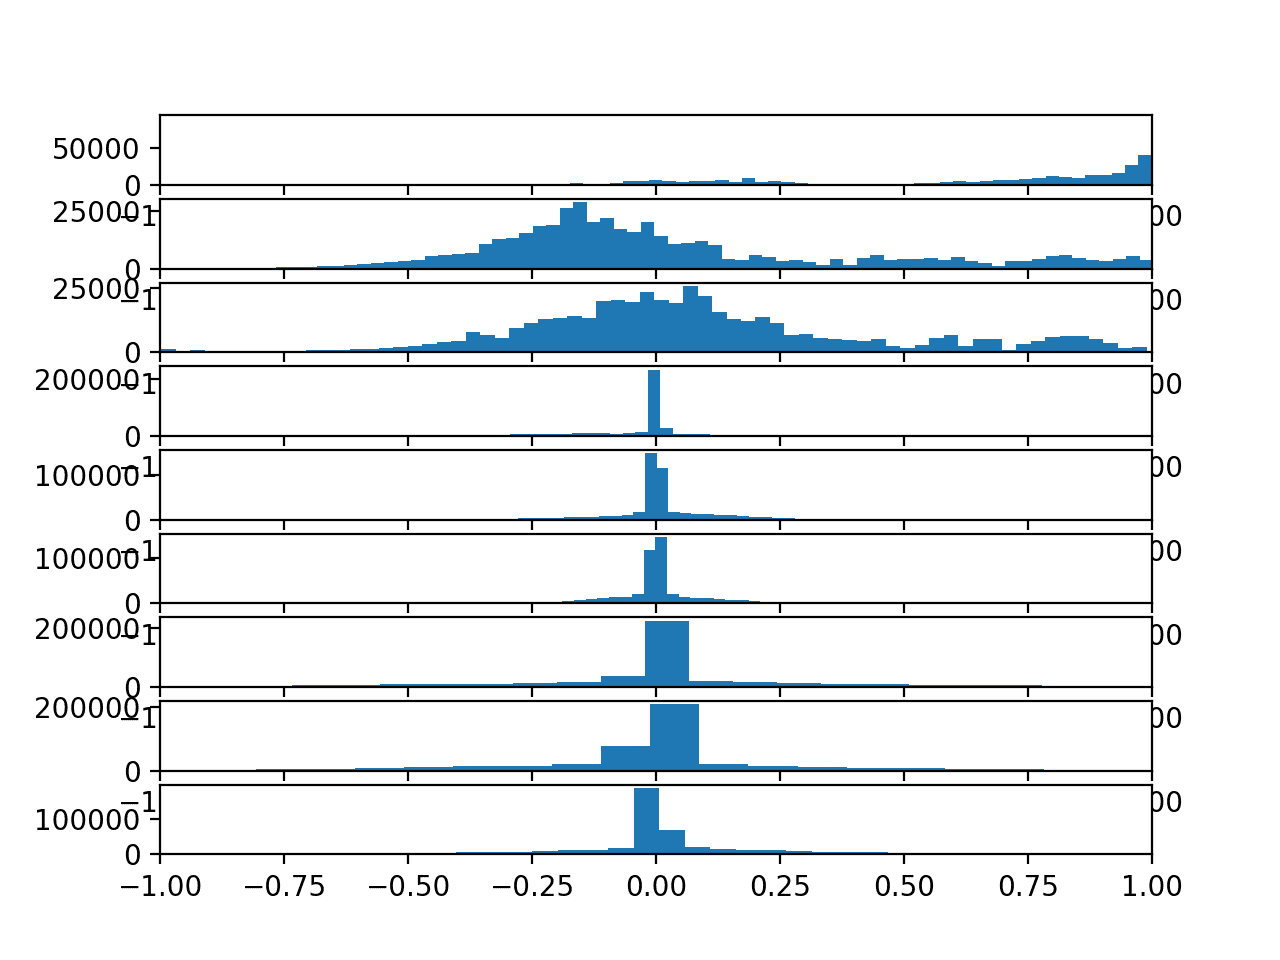 Histograms of each variable in the training data set  - Histograms of each variable in the training data set - How to Develop 1D Convolutional Neural Network Models for Human Activity Recognition